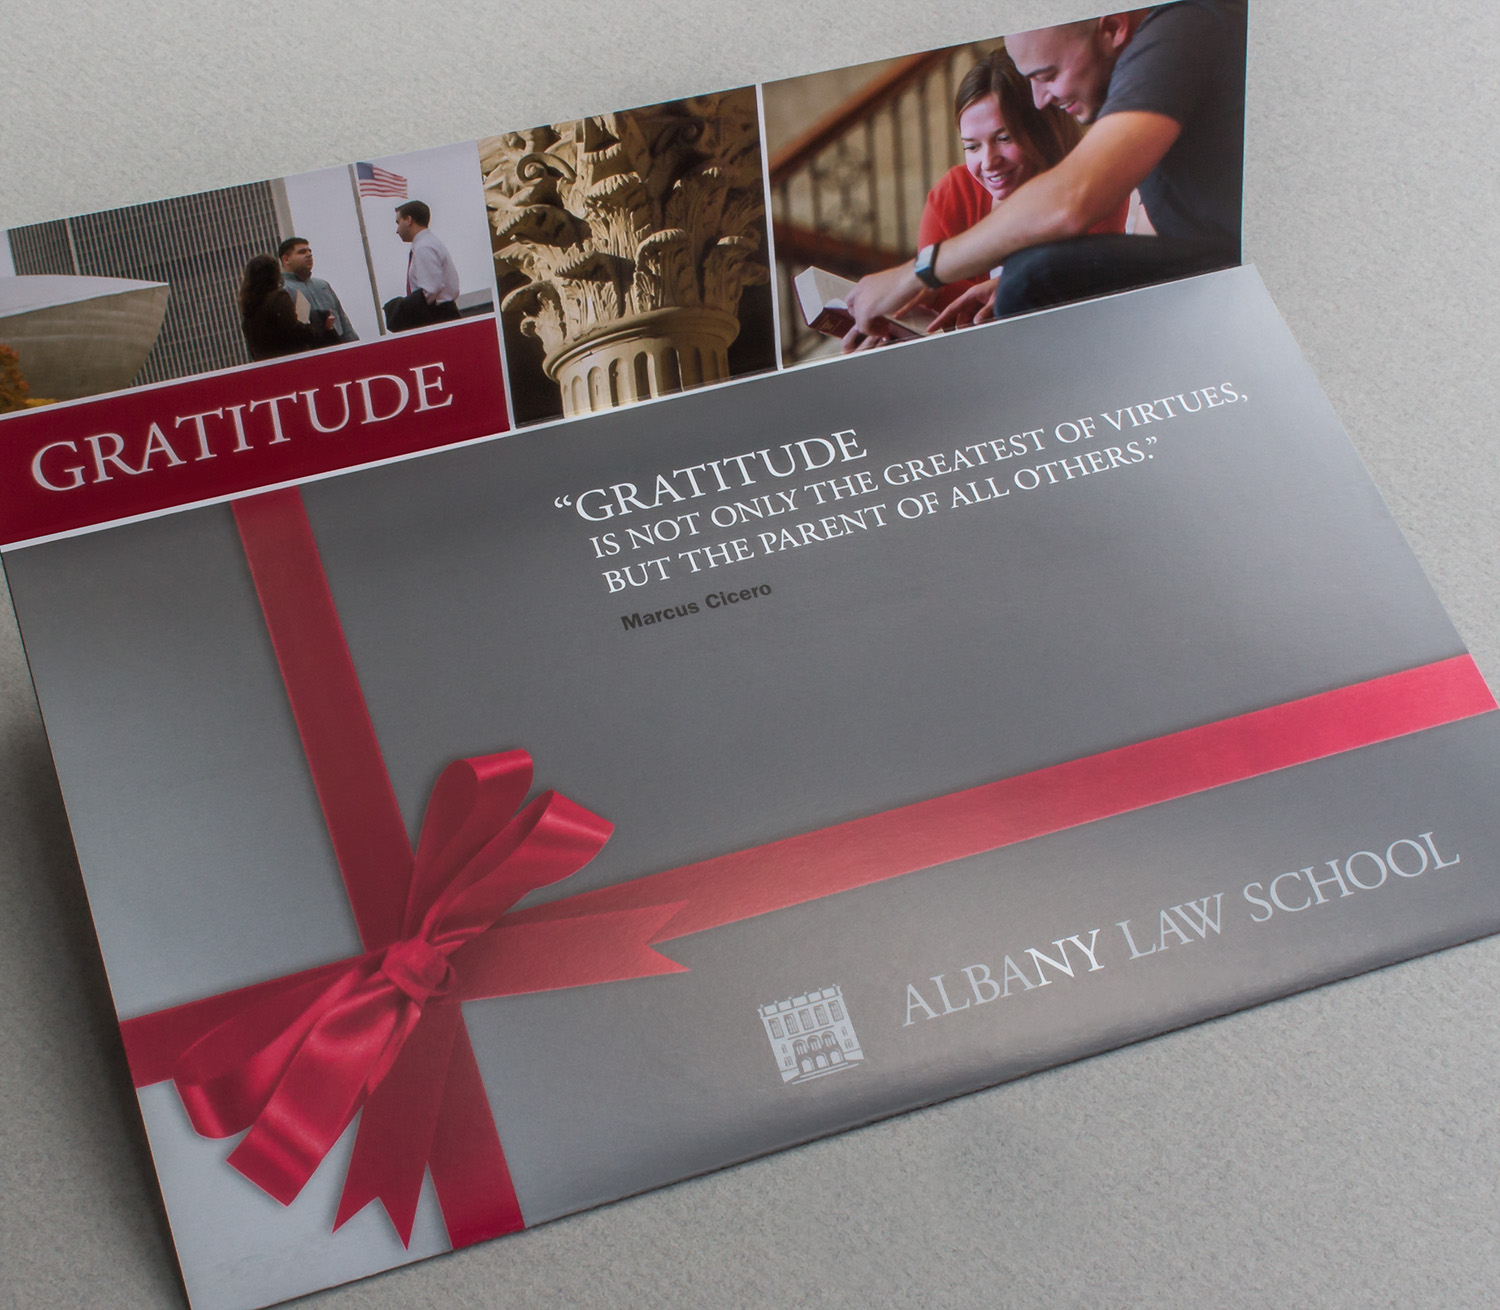 Panarama Design sketched many concepts for a gift-wrapped package for the outside panels of this mailer. (below)